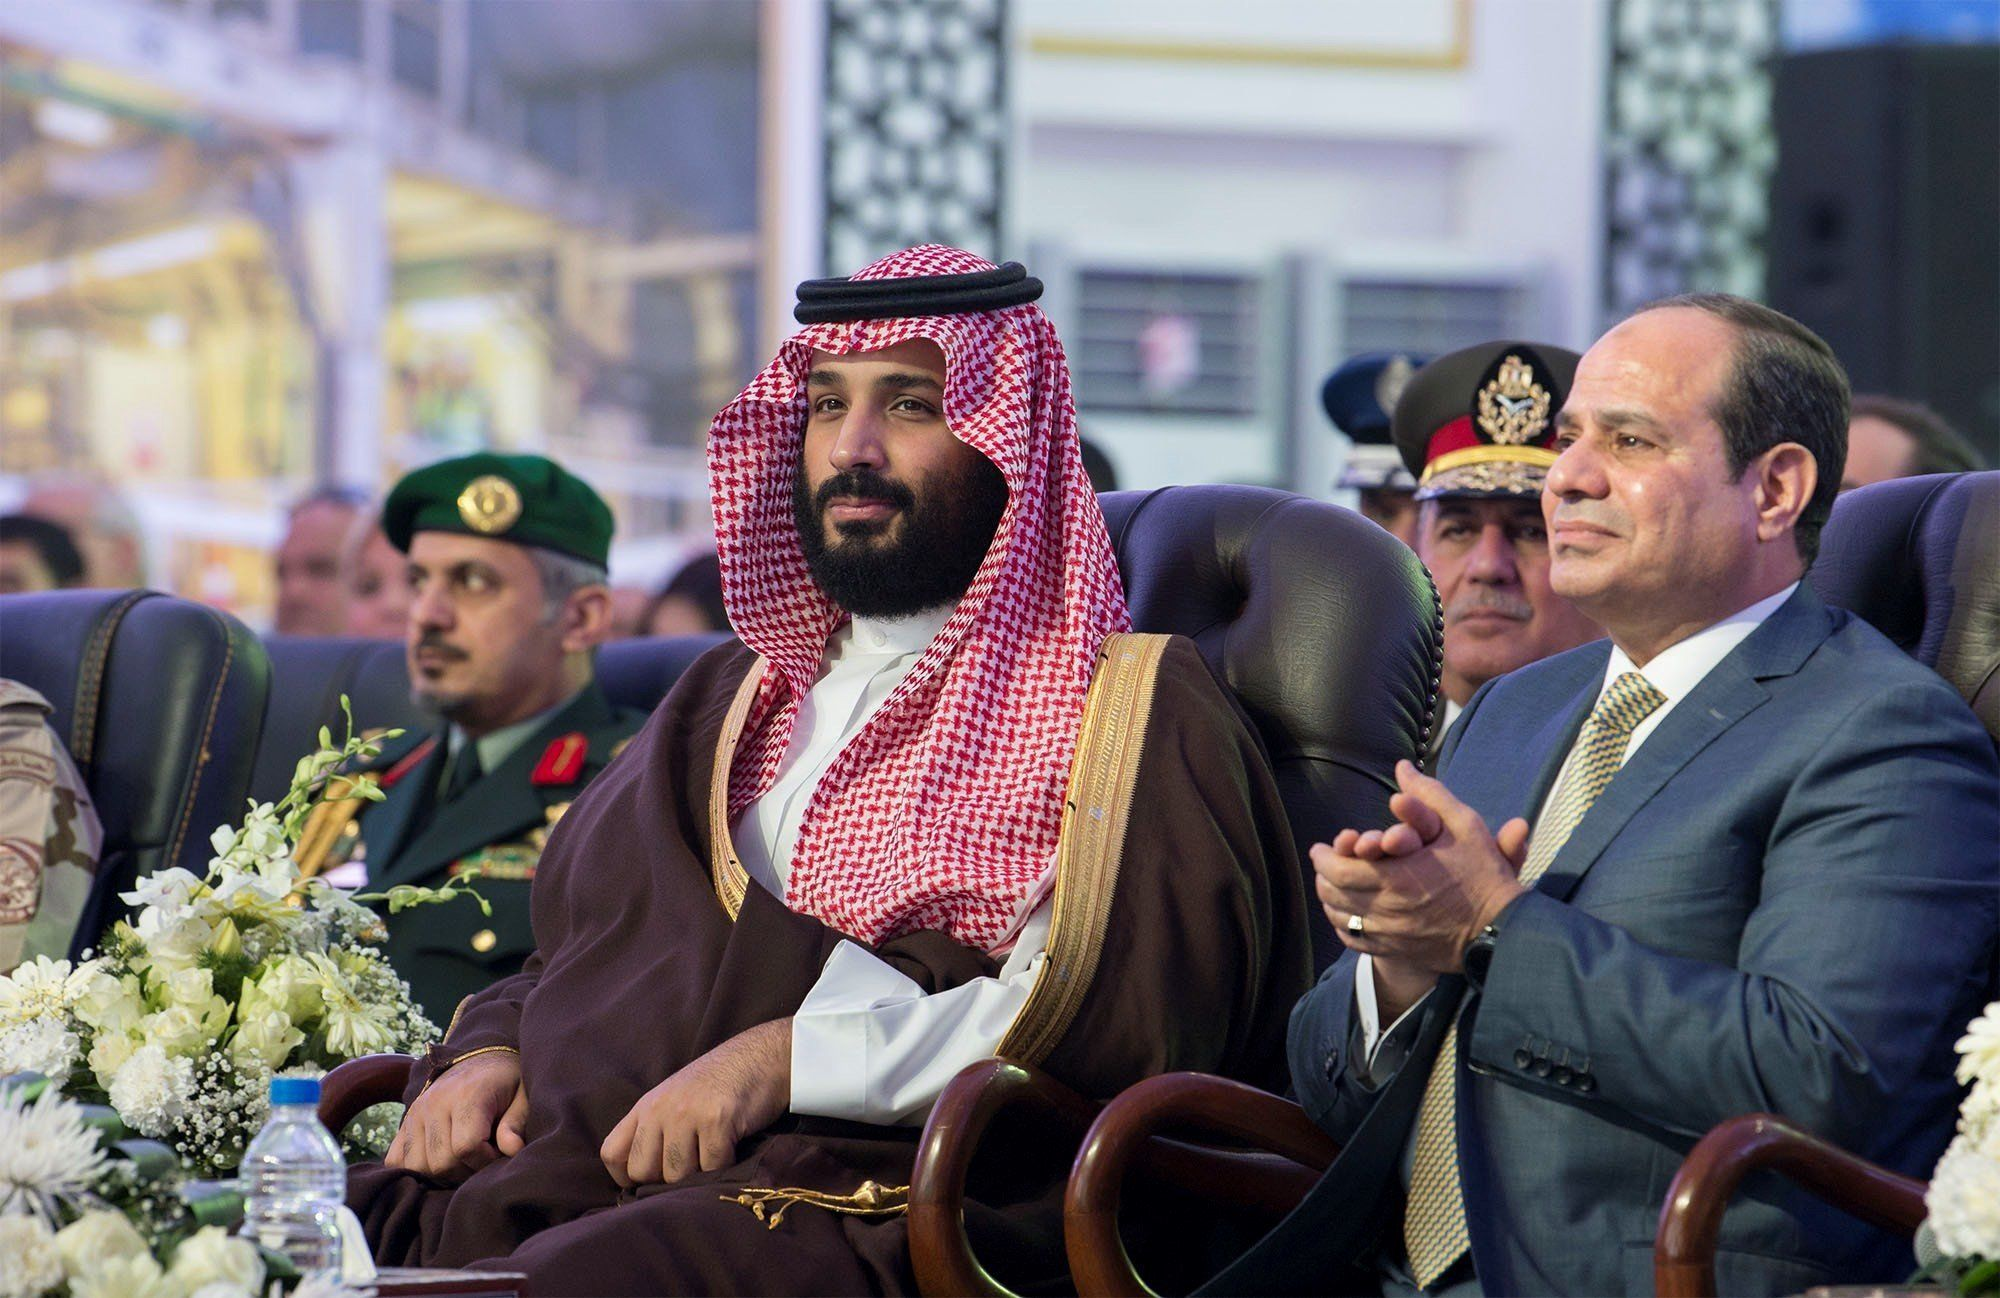 Anadolu Agency via Getty Images                   Crown Prince and Defence Minister of Saudi Arabia Mohammad bin Salman al-Saud